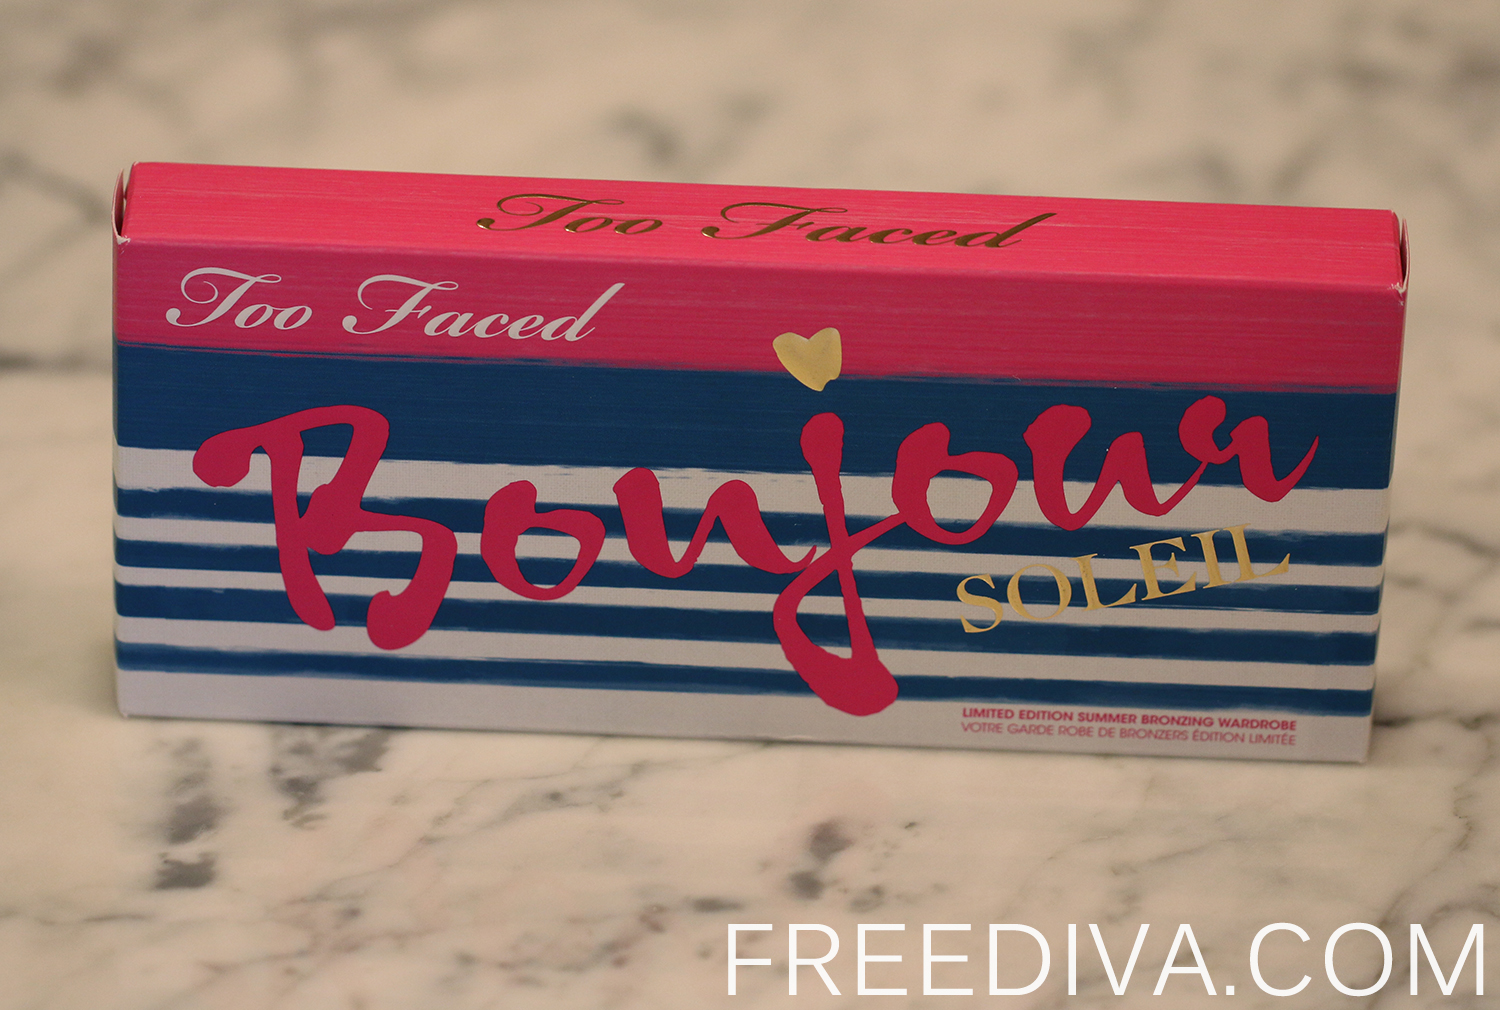 "Too Faced ""Bonjour Soleil"" Summer Bronzing Wardrobe, Limited Edition"